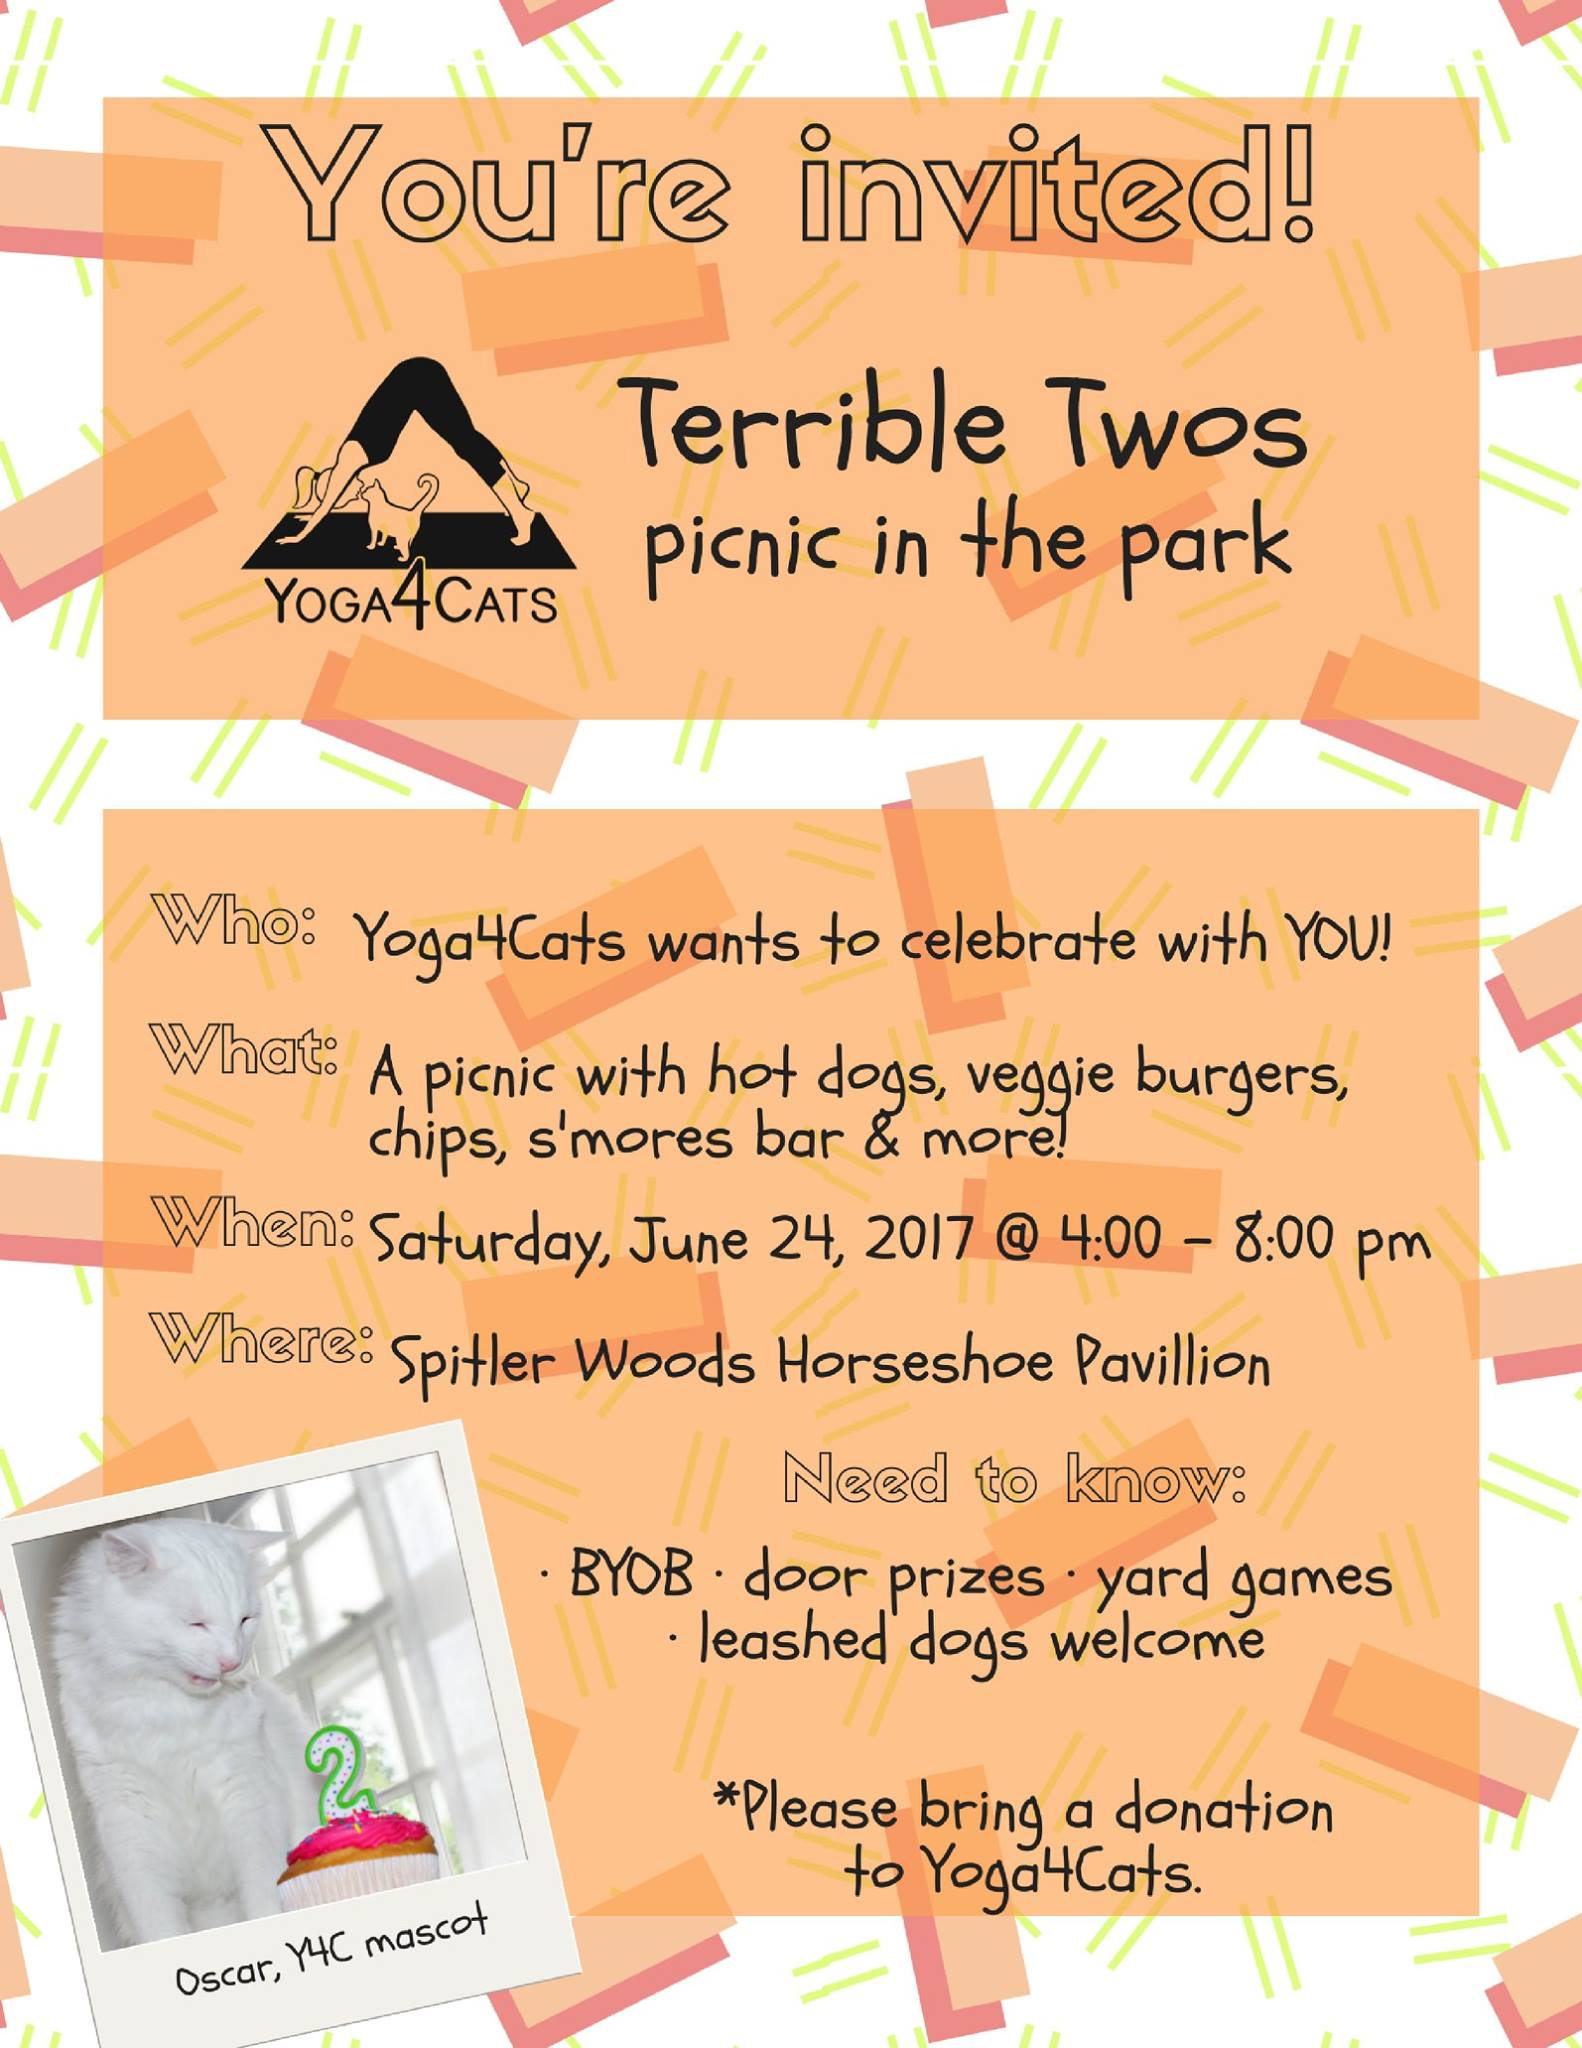 Terrible Twos - Picnic in the Park!  Join us for as we celebrate our Terrible Twos - the second anniversary of our premiere & namesake  Yoga4Cats event .